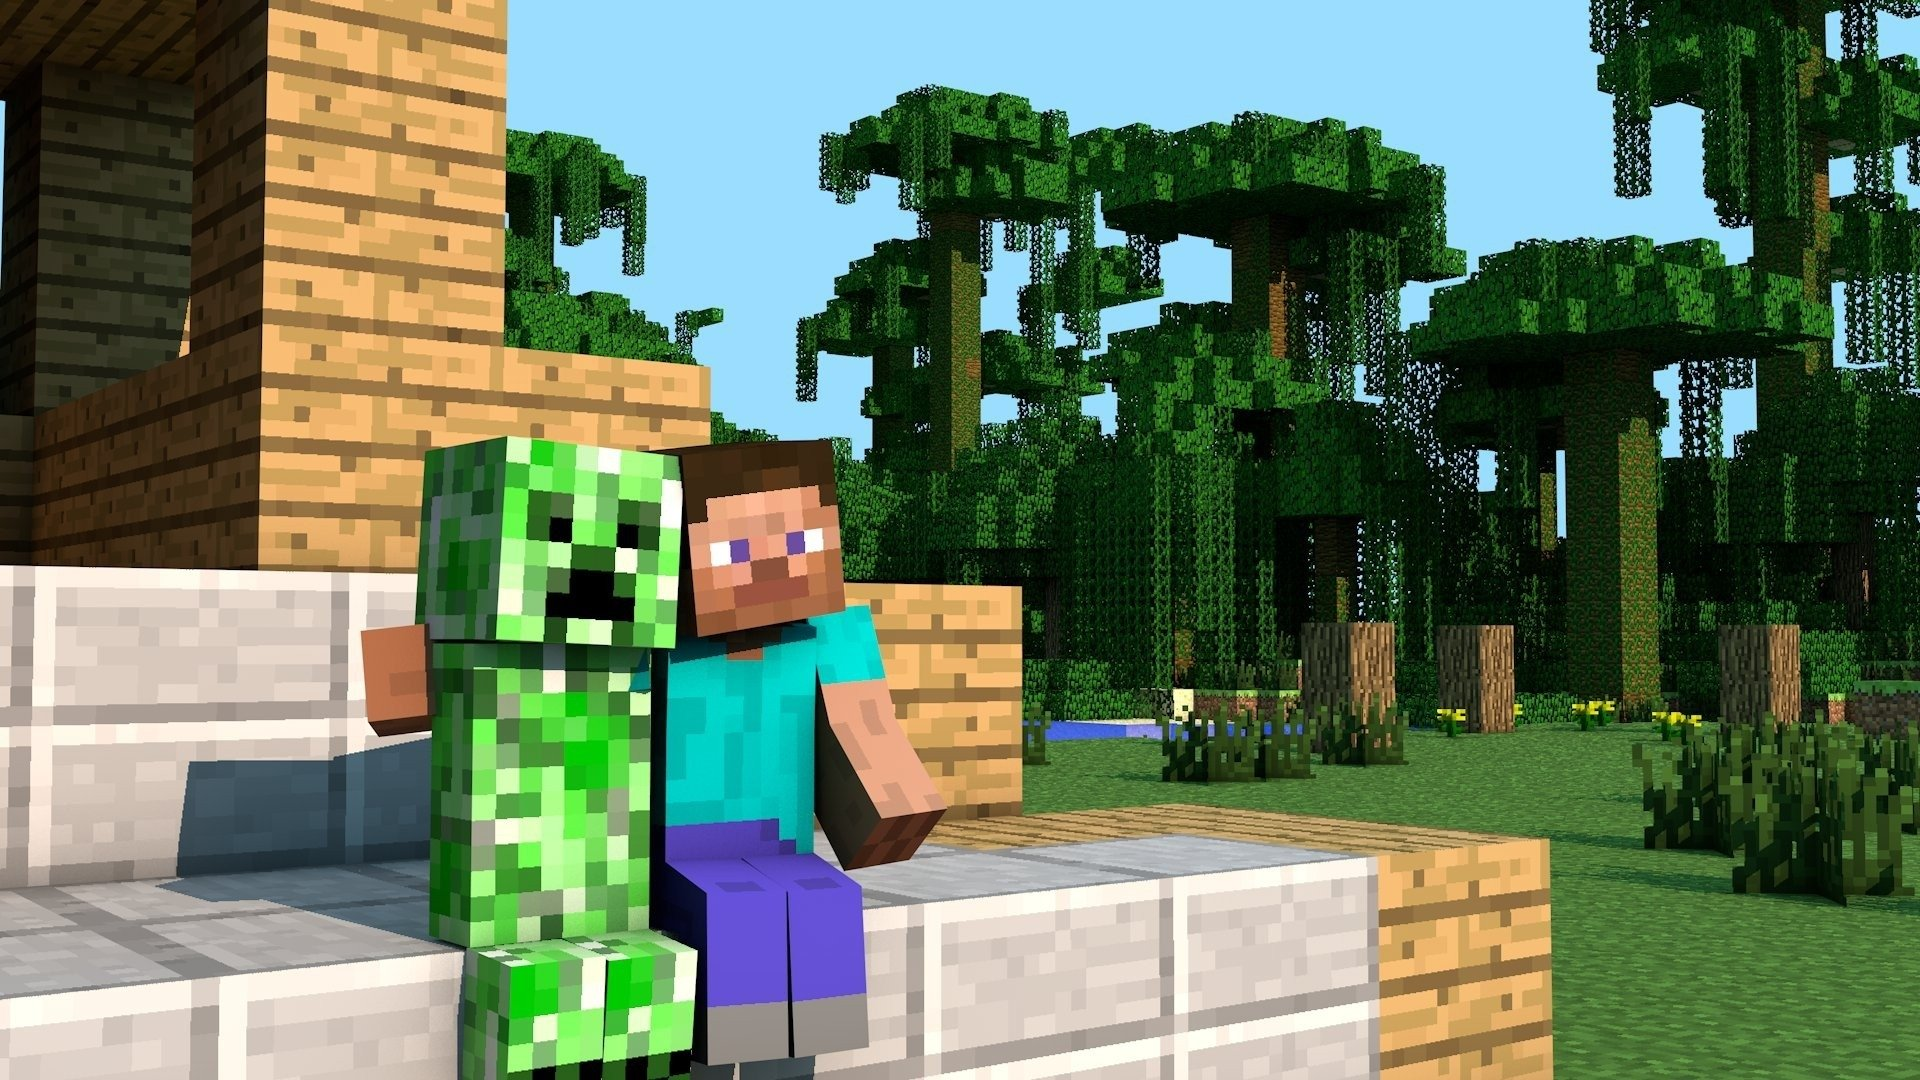 Video Game - Minecraft  Video Game Creeper (Minecraft) Steve (Minecraft) Wallpaper